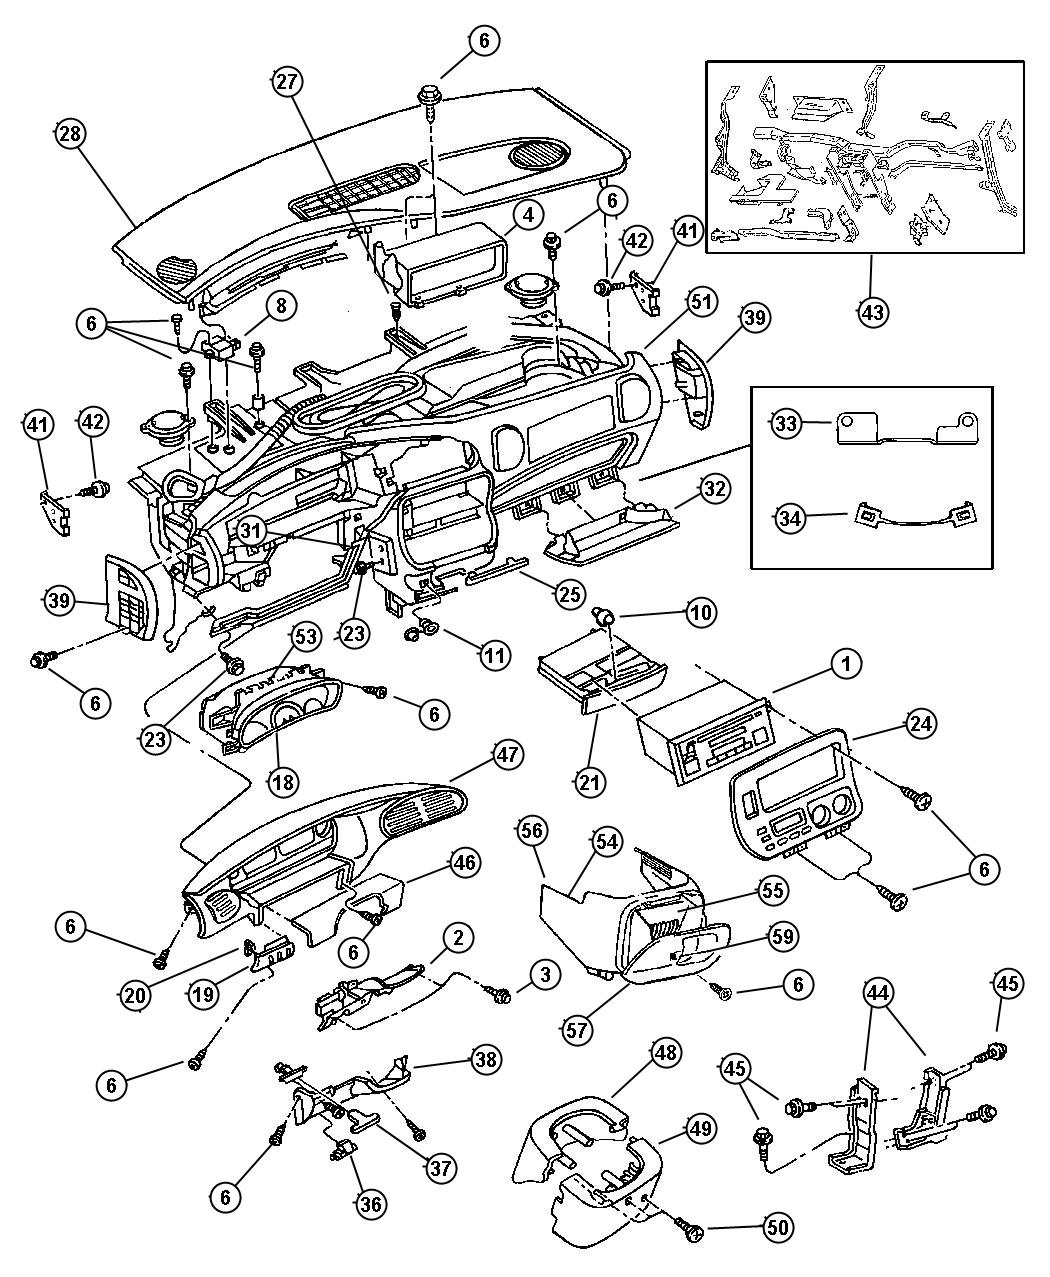 hight resolution of plymouth voyager engine diagram another blog about wiring diagram u2022 2006 chrysler 300 fuse diagram